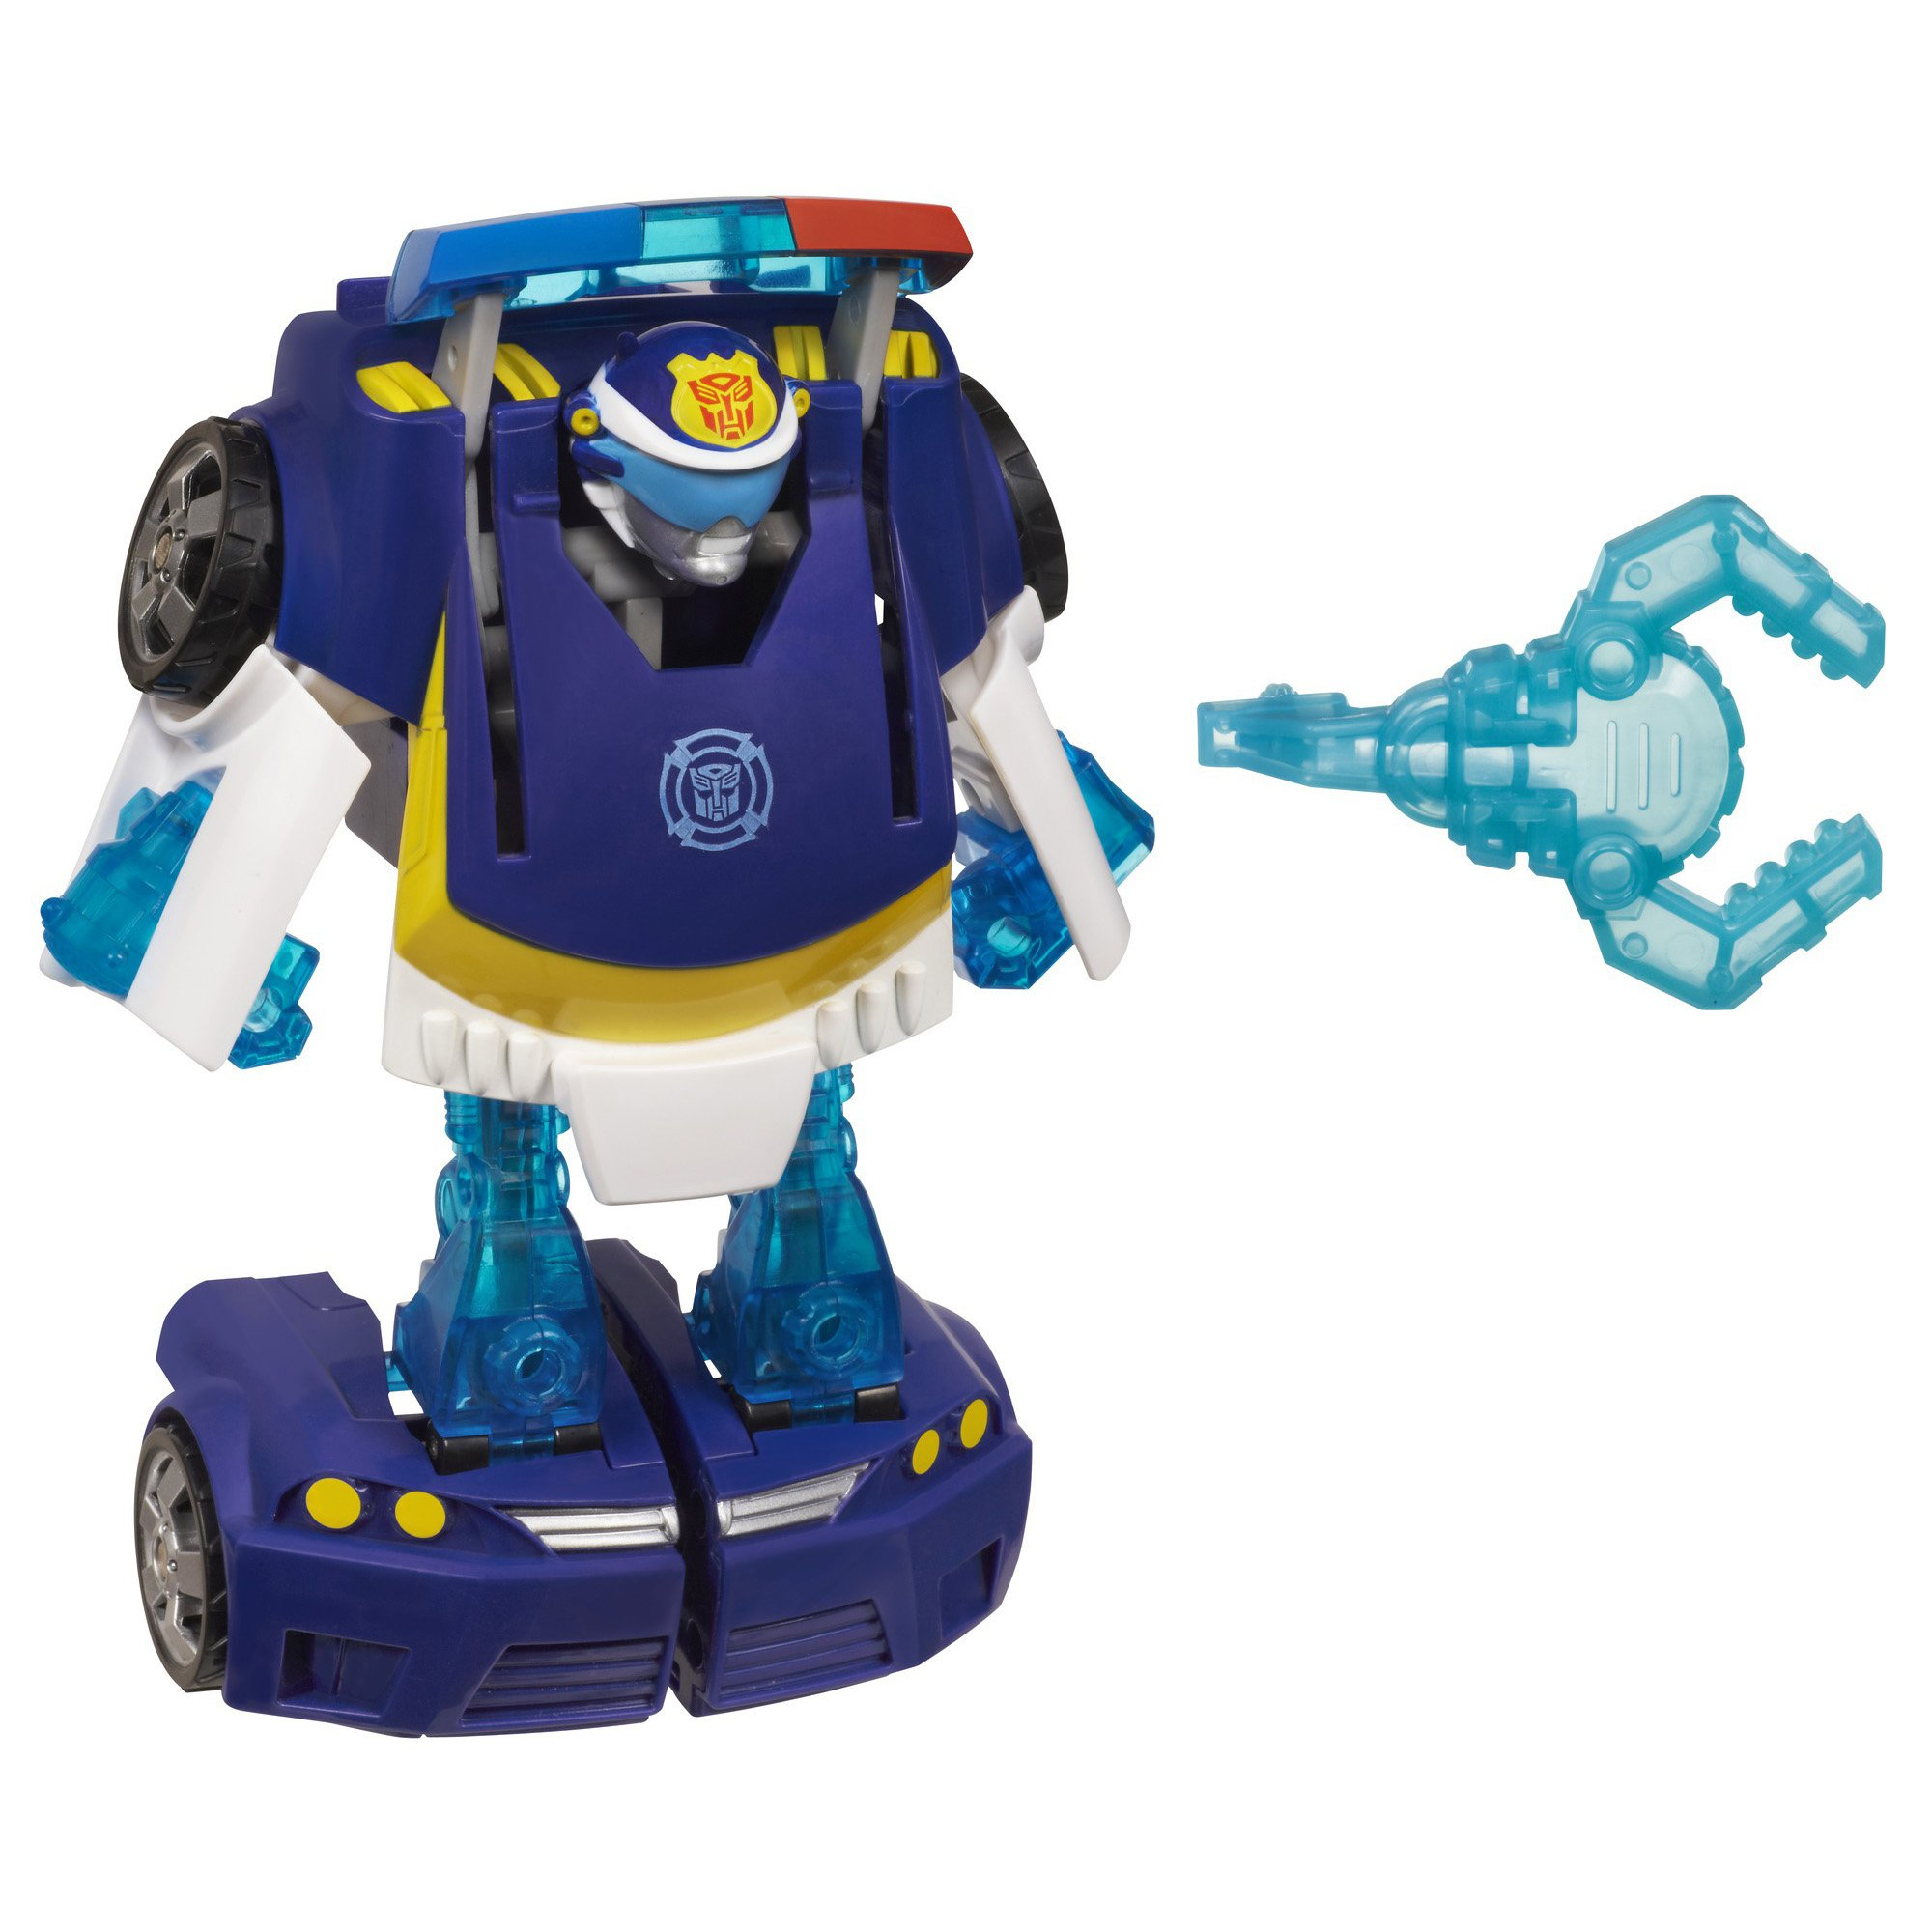 Transformers Playskool Heroes Rescue Bots Energize Chase the Police-Bot Action Figure, Ages 3-7 (Amazon Exclusive)